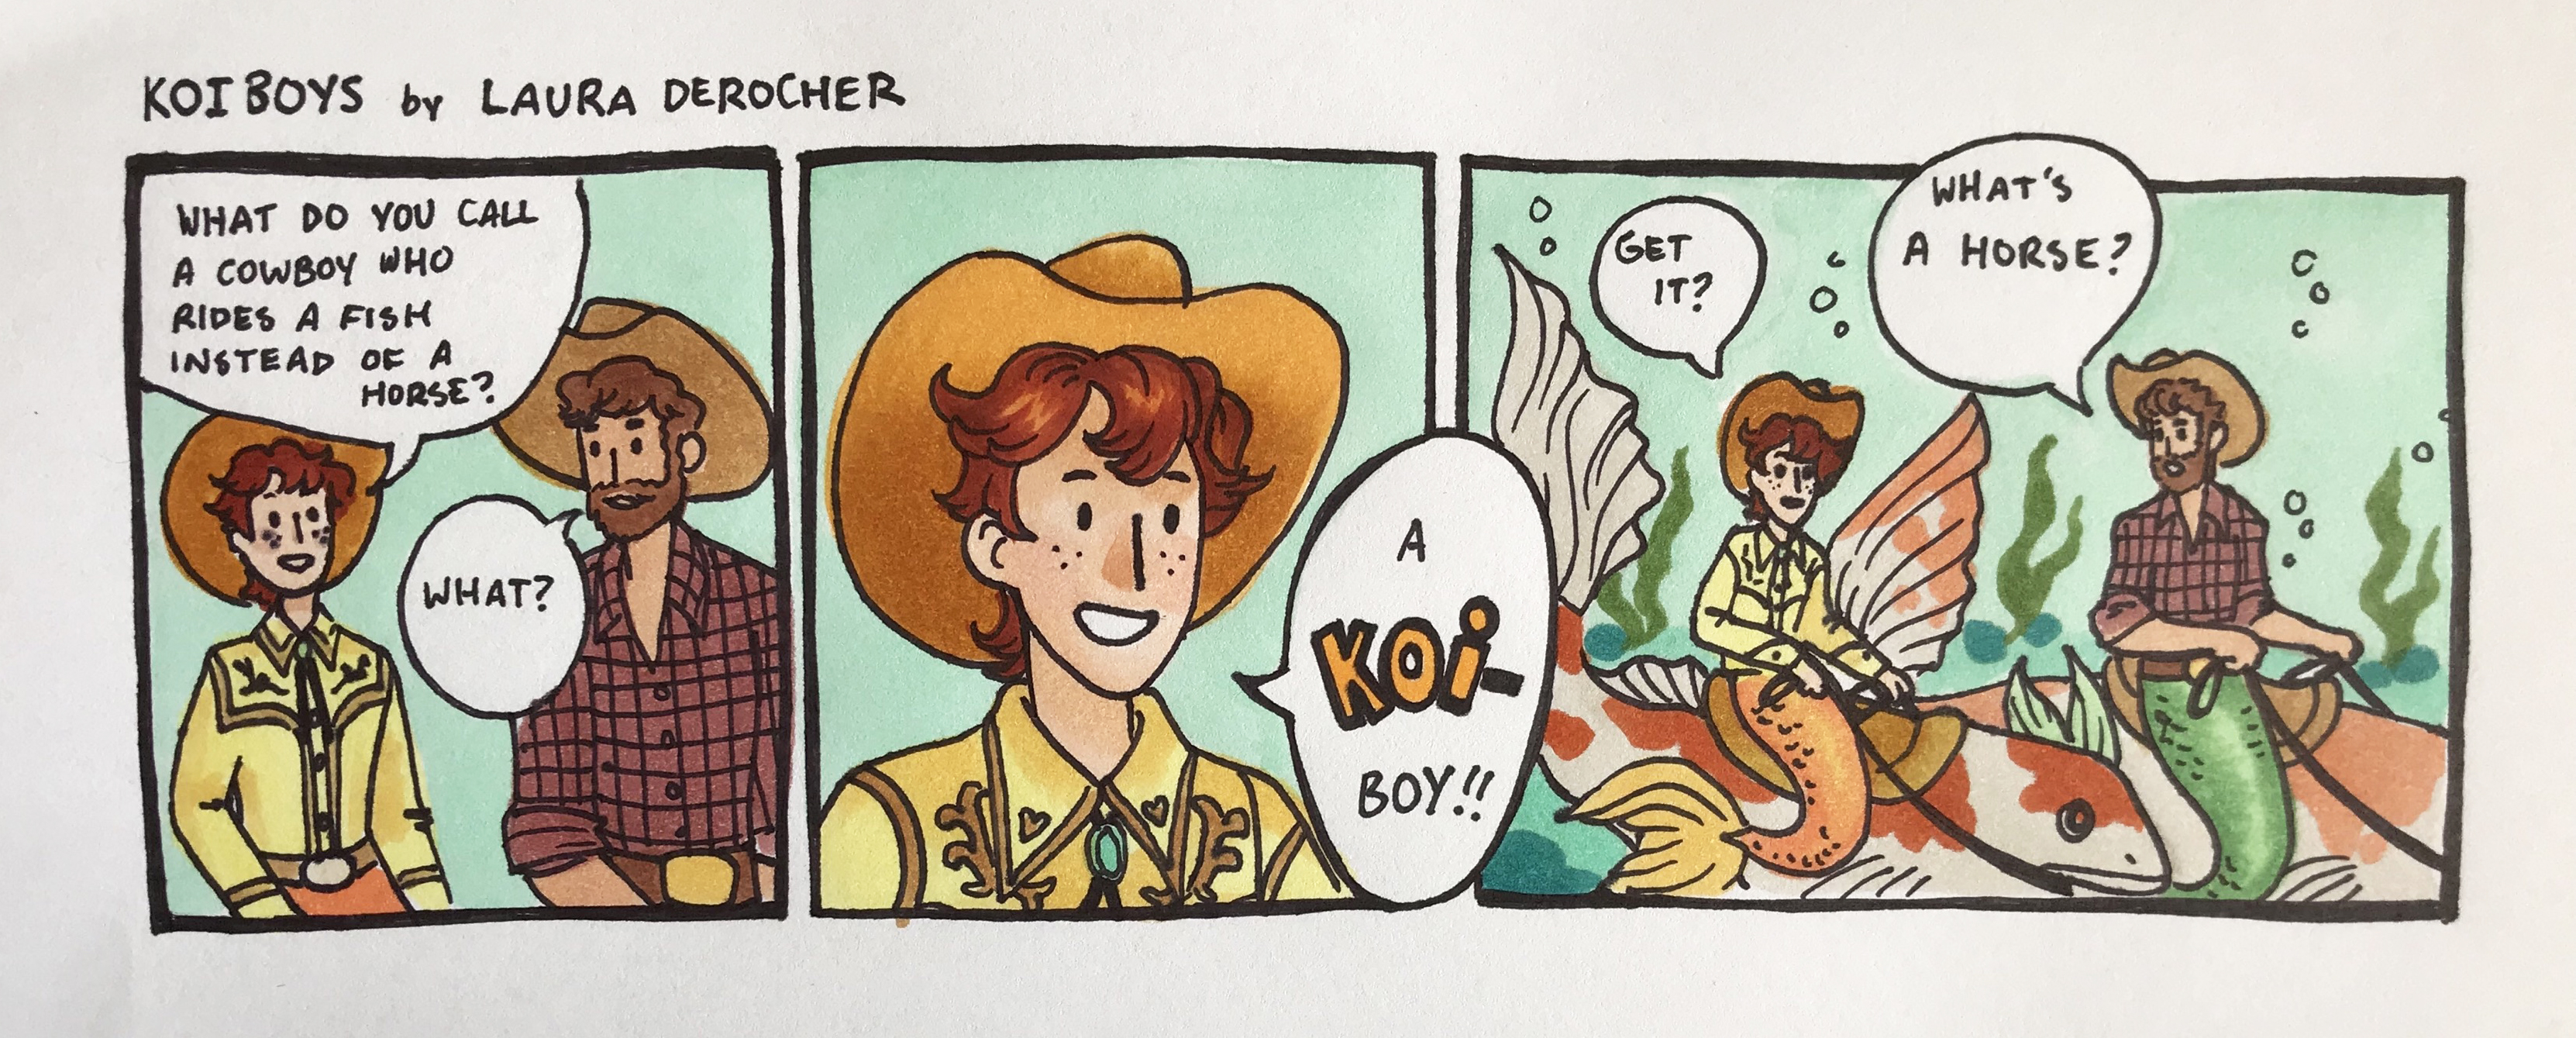 Koi-boys comic _ Laura DeRocher